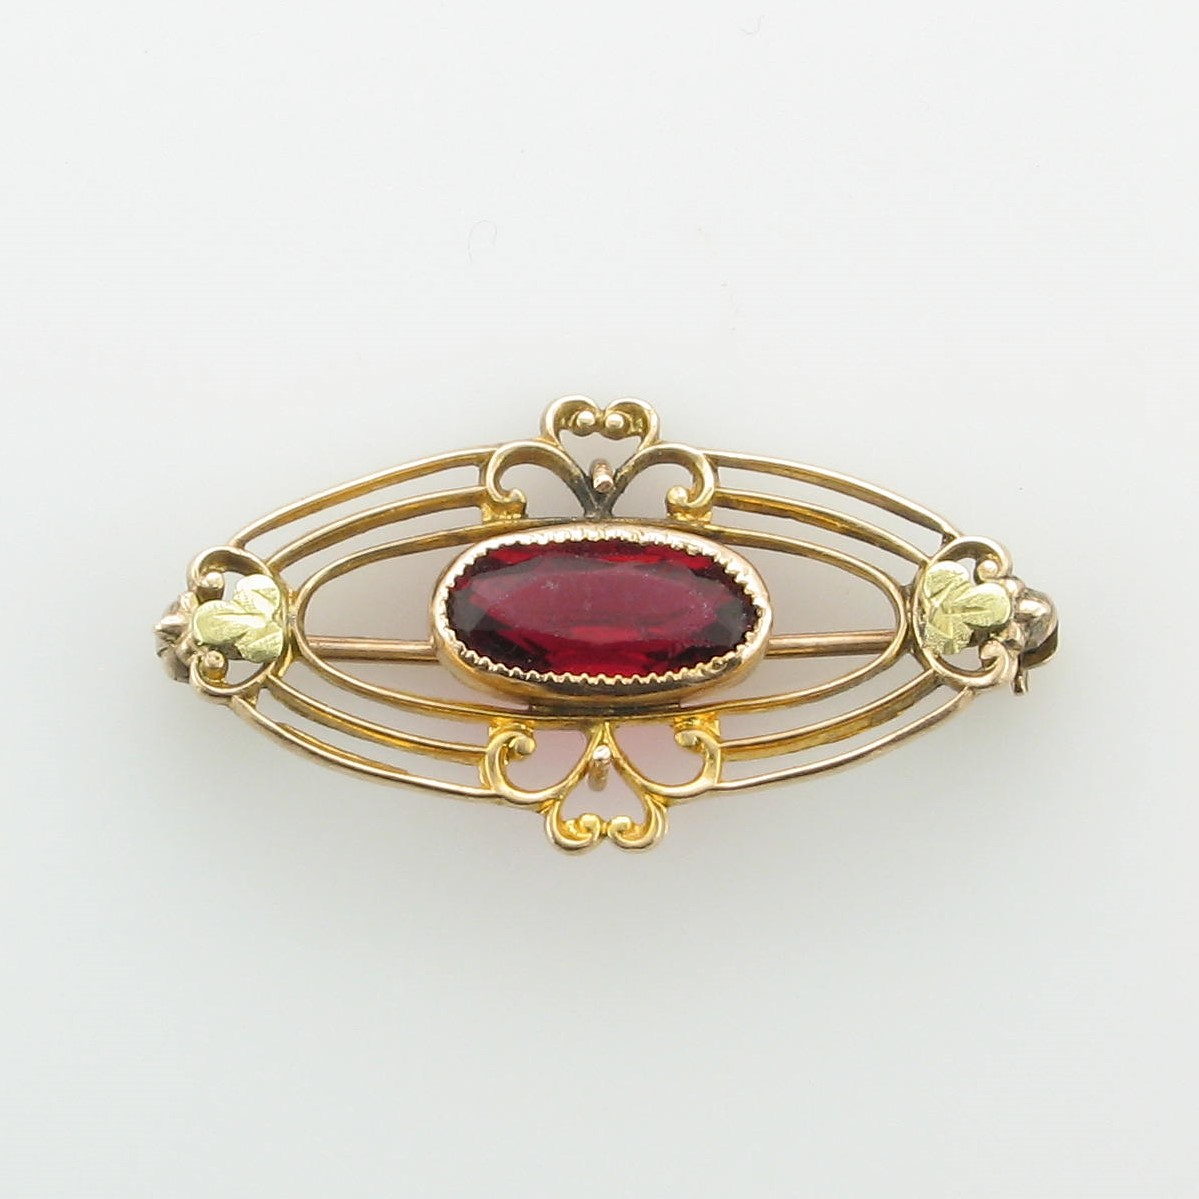 Vintage Garnet Pin set in 10k Yellow Gold